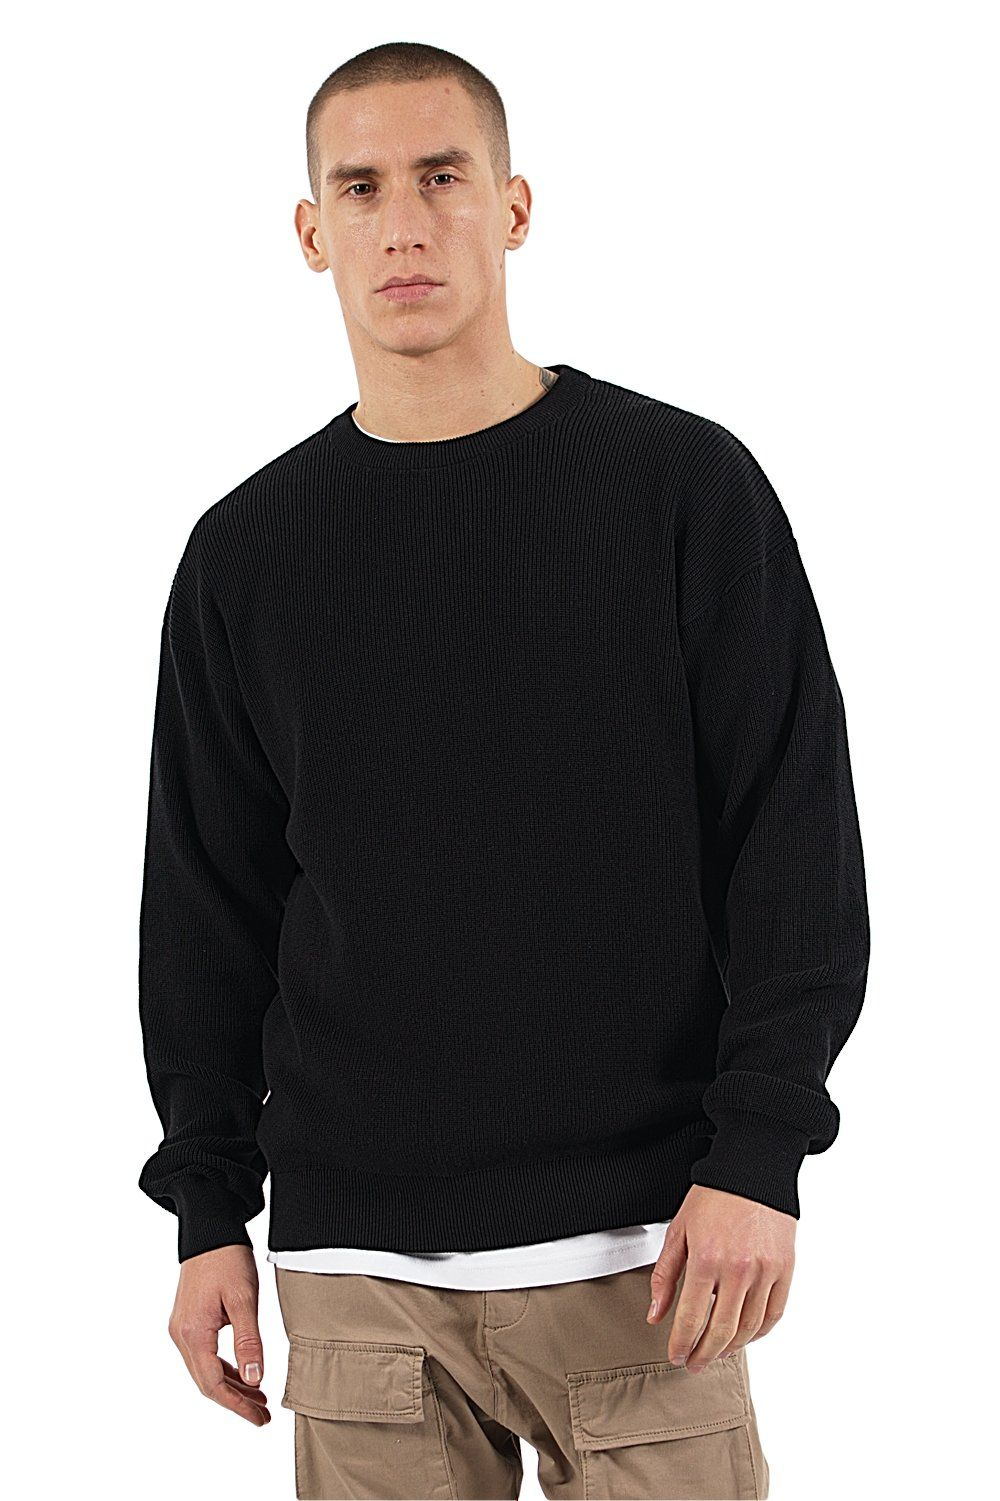 Milan Oversize Knit Sweater Black - PEGADOR - Dominate the Hype